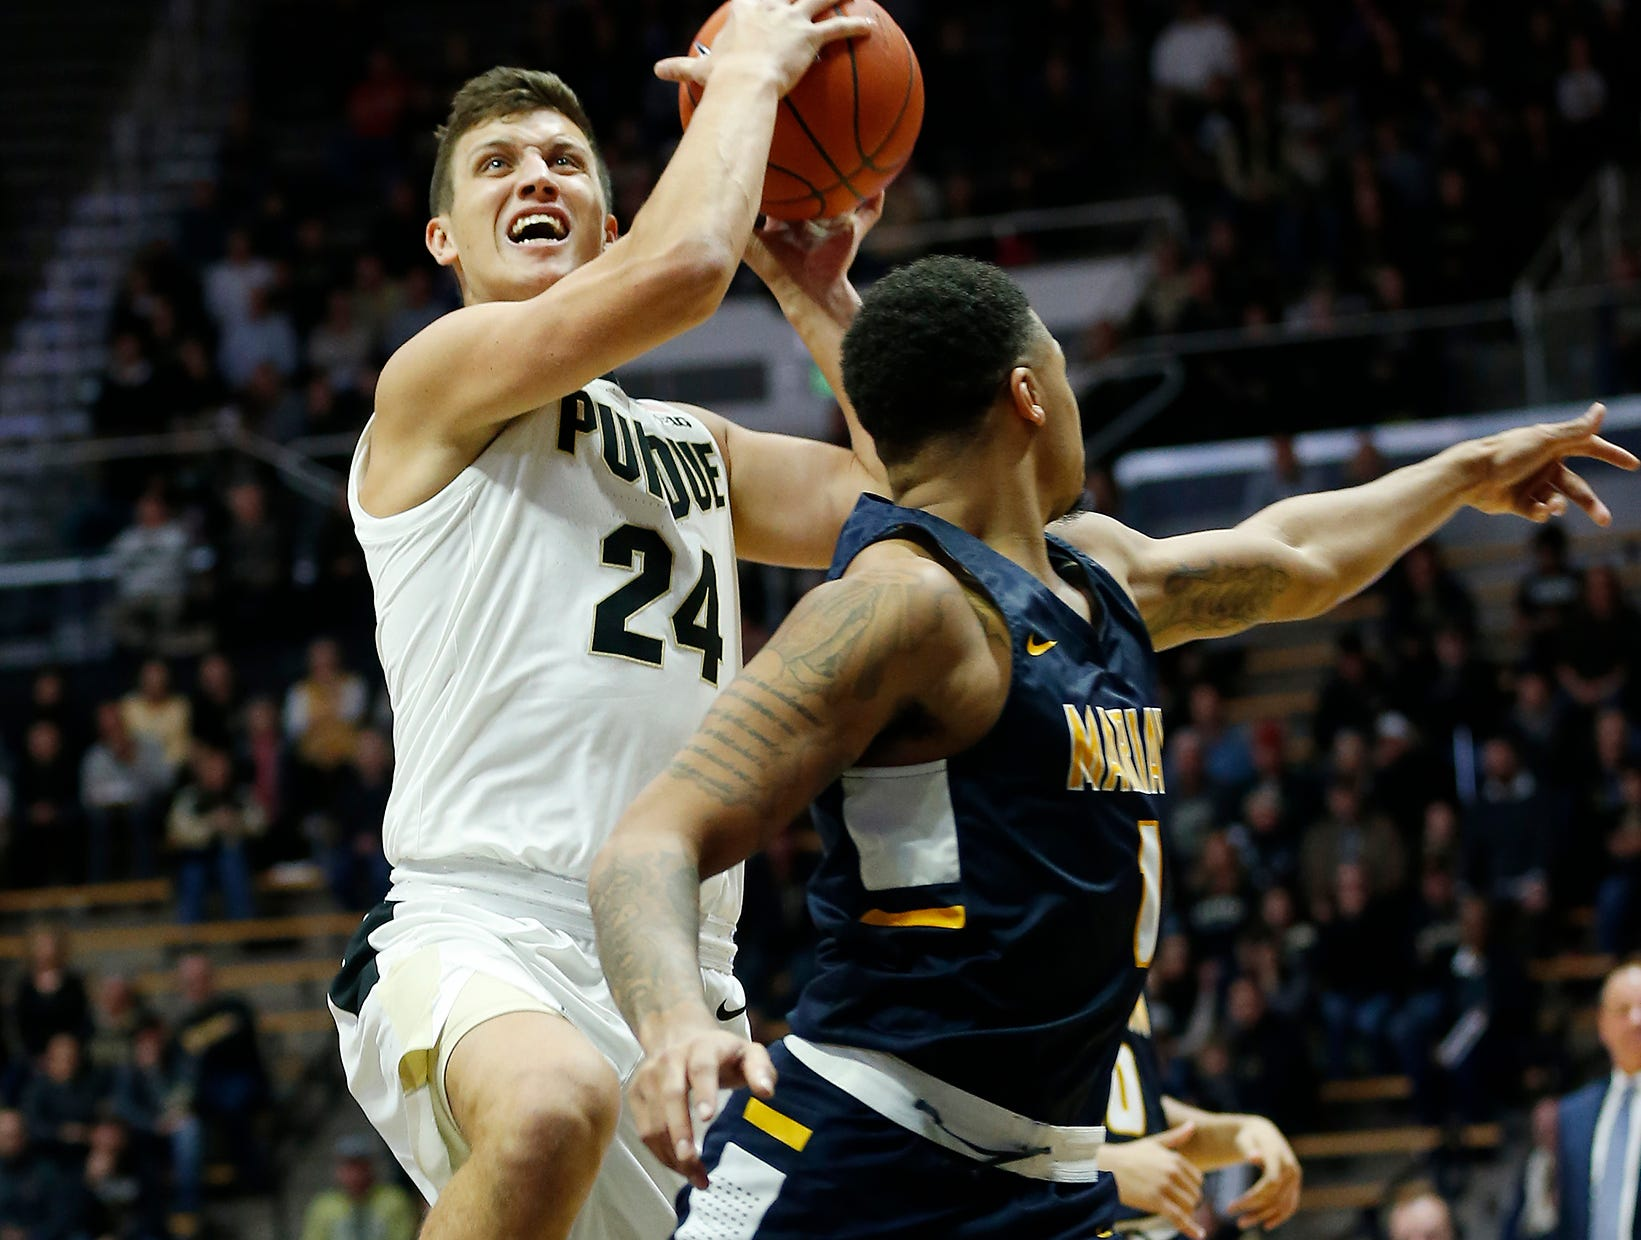 Grady Eifert of Purdue with a drive to the basket against Marian University Thursday, November 1, 2018, at Mackey Arena. Purdue defeated Marian University 75-56.